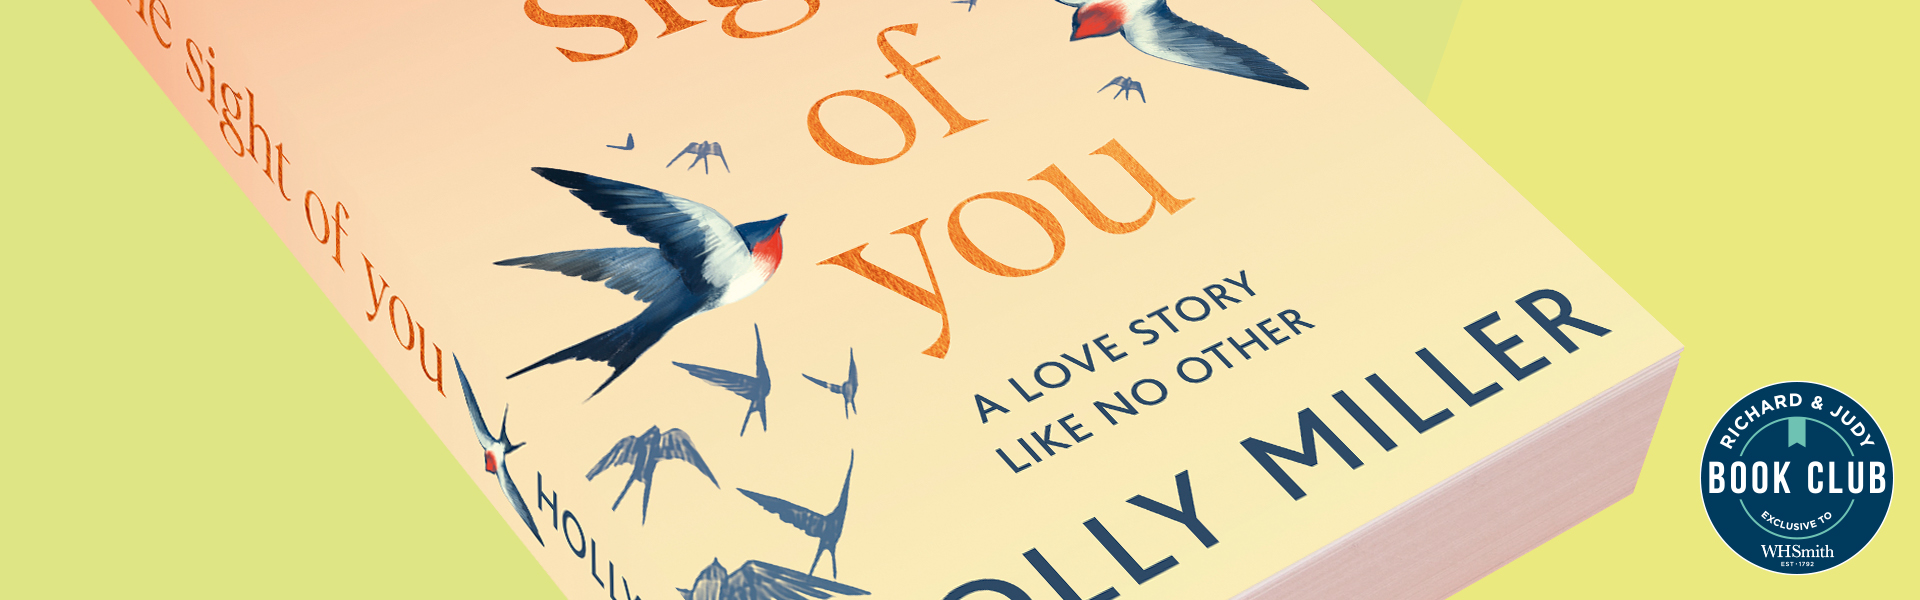 Richard & Judy Introduce The Sight of You by Holly Miller